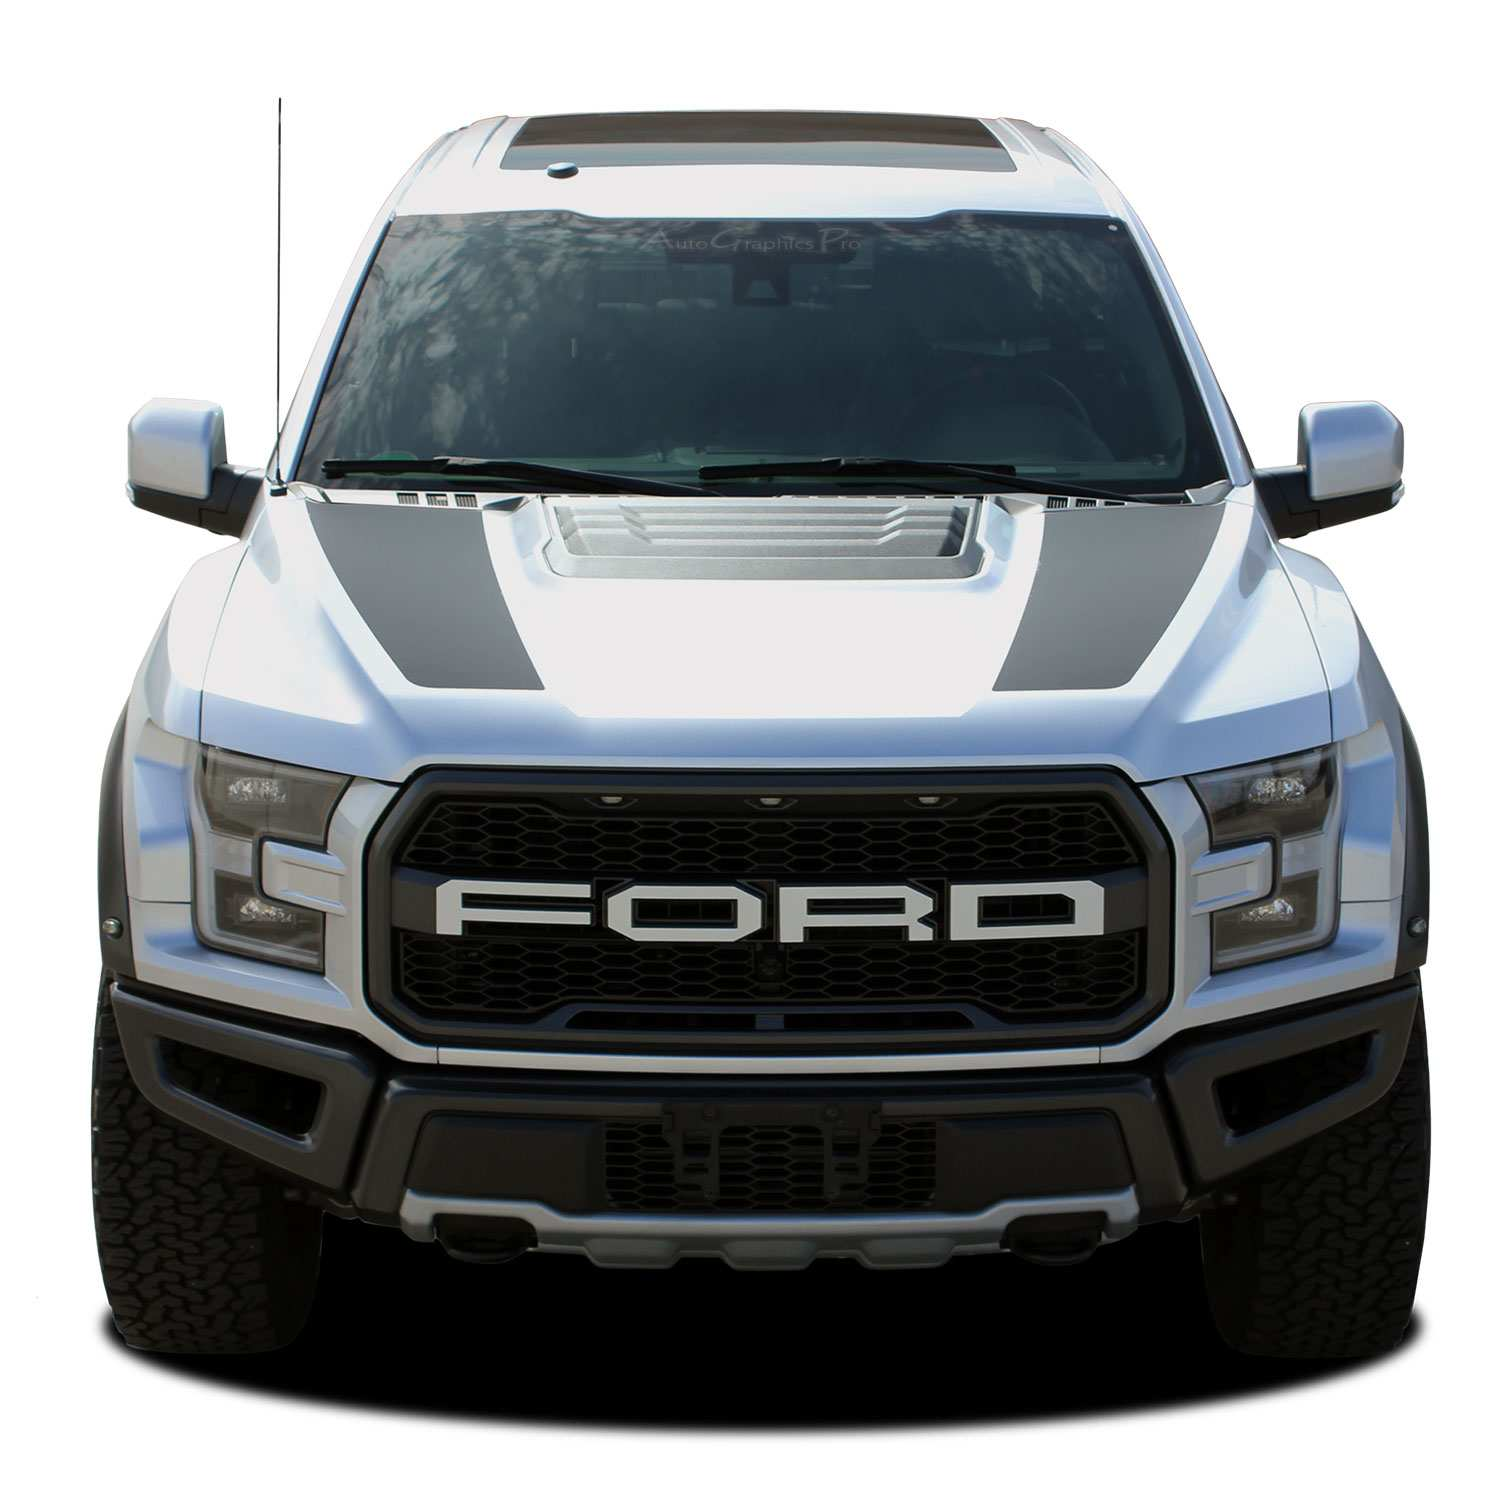 52 All New 2020 Ford Raptor Specs And Review